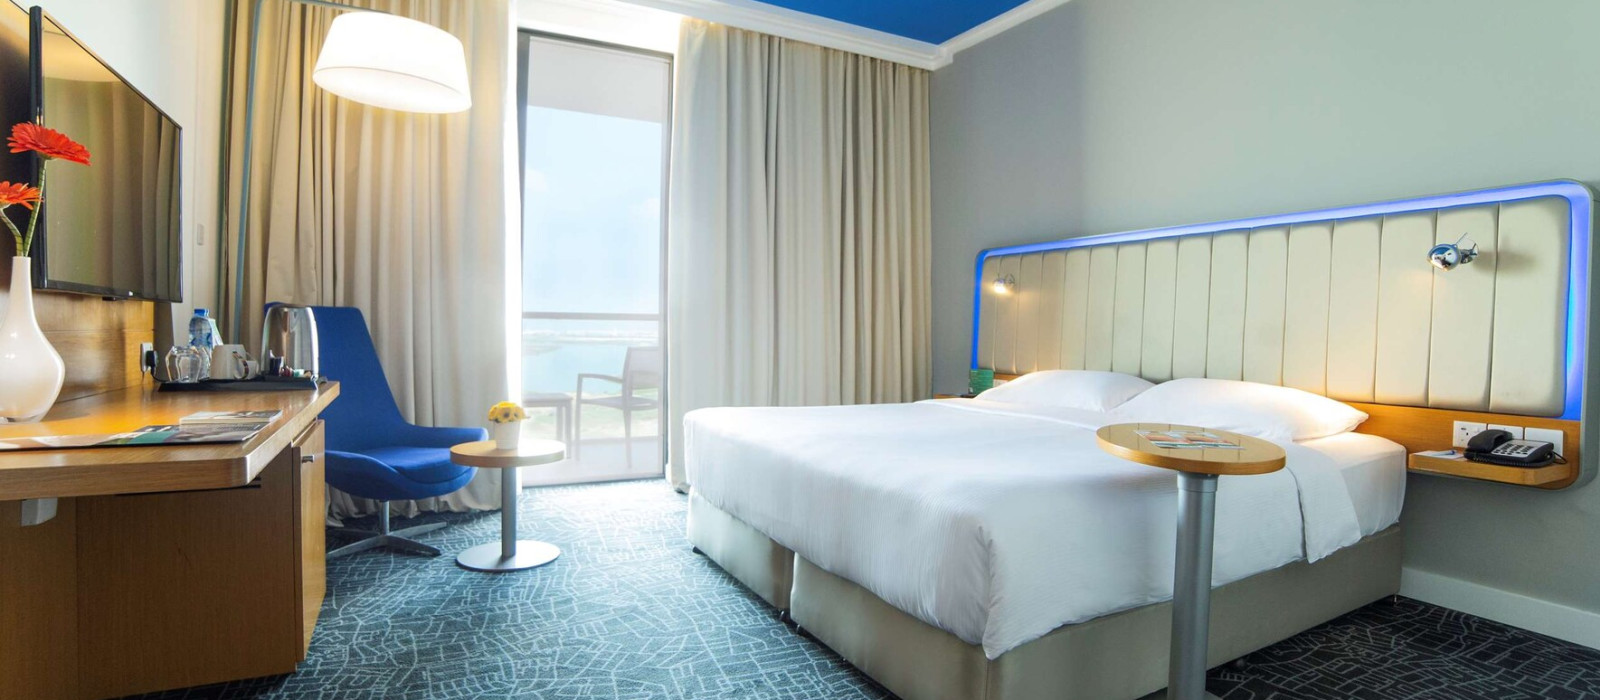 Hotel Park Inn by Radisson Abu Dhabi, Yas Island United Arab Emirates